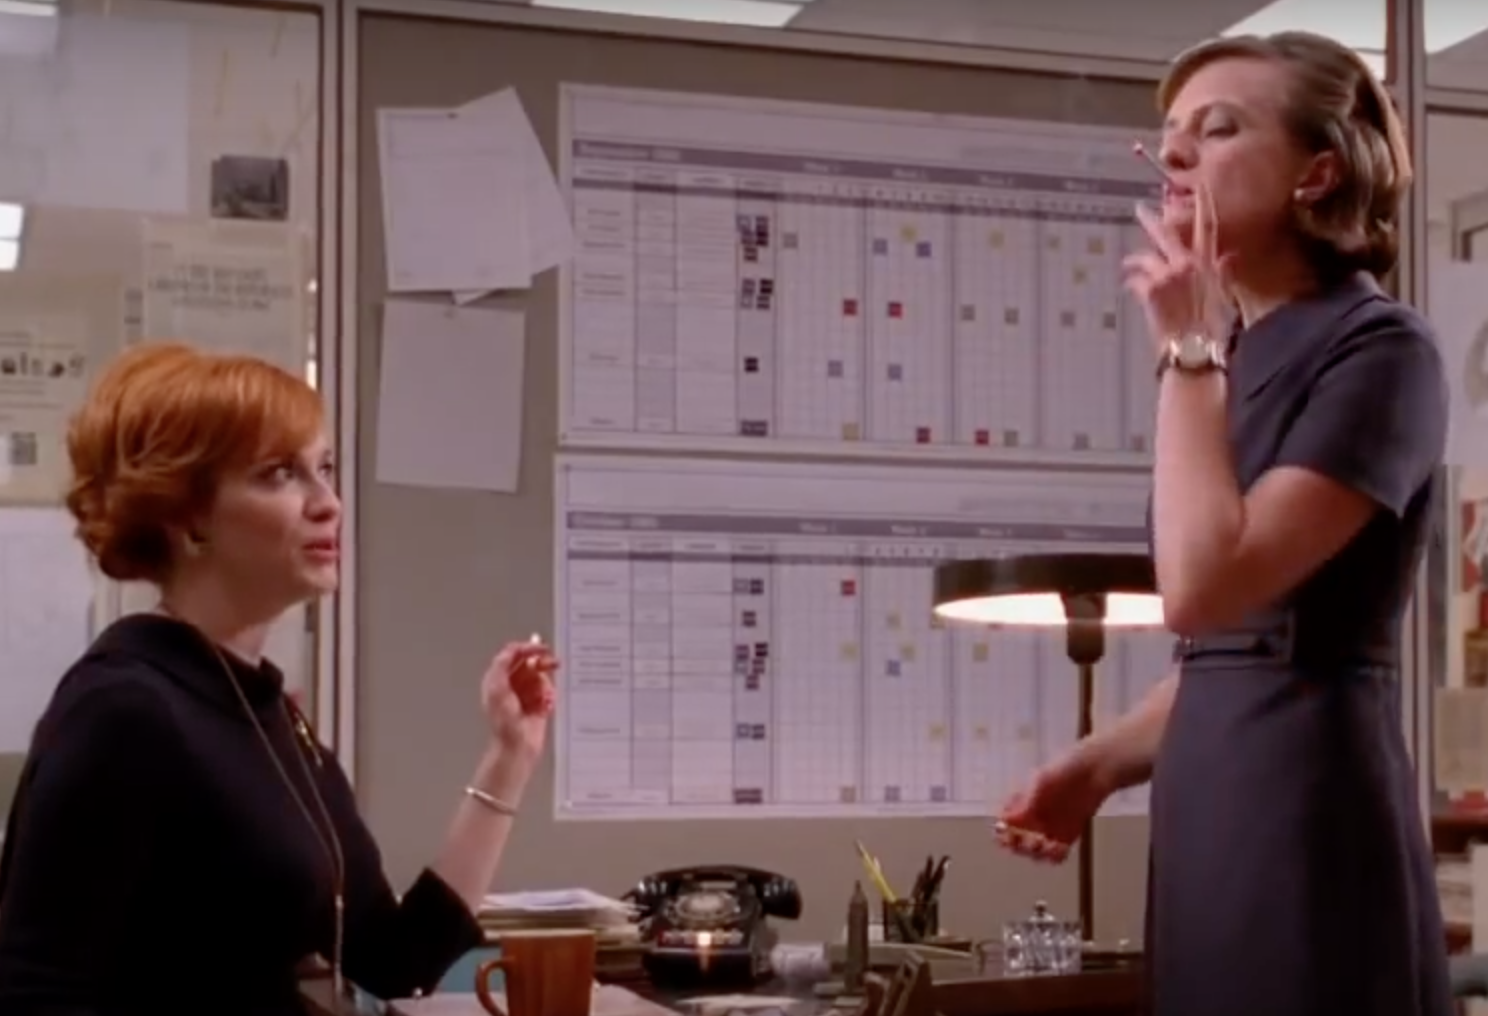 Examples of workplace sexism